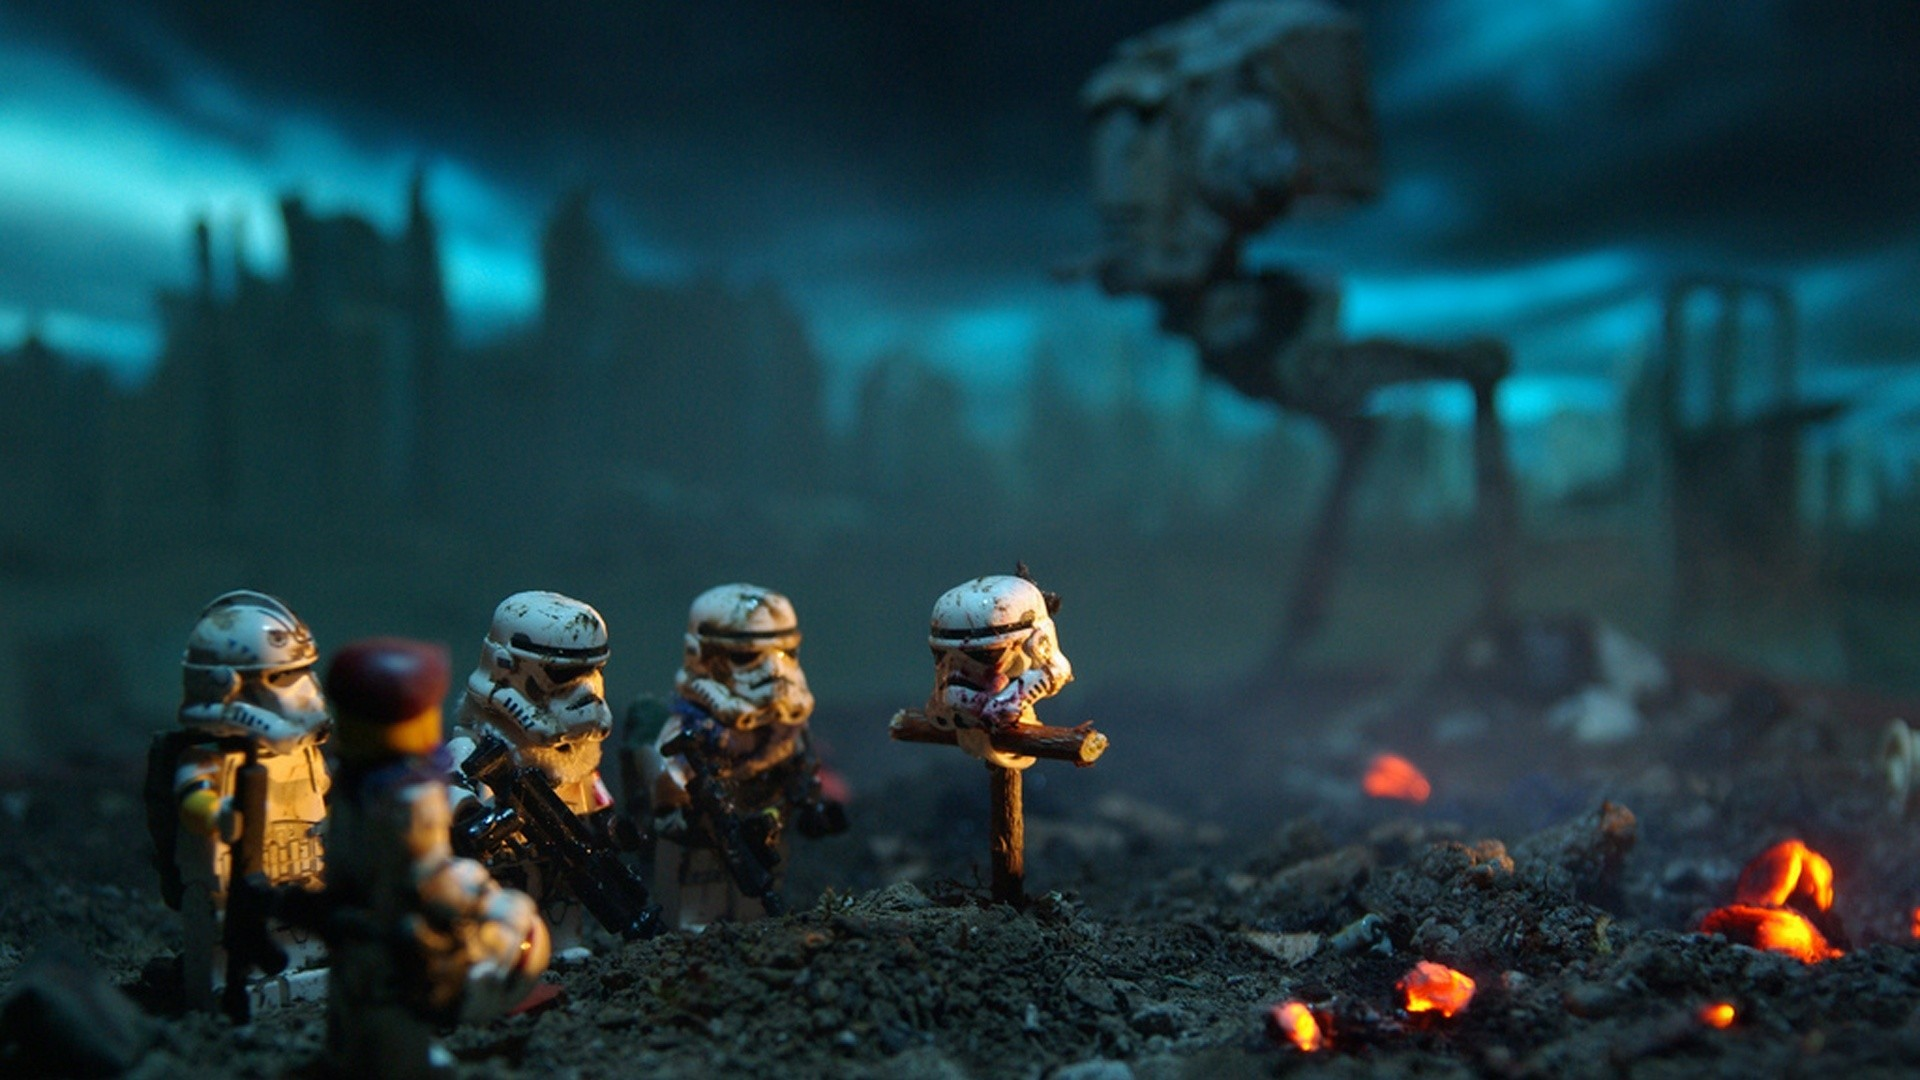 Star Wars Lego Cool Pictures HD Wallpaper Star Wars Lego Cool Pictures